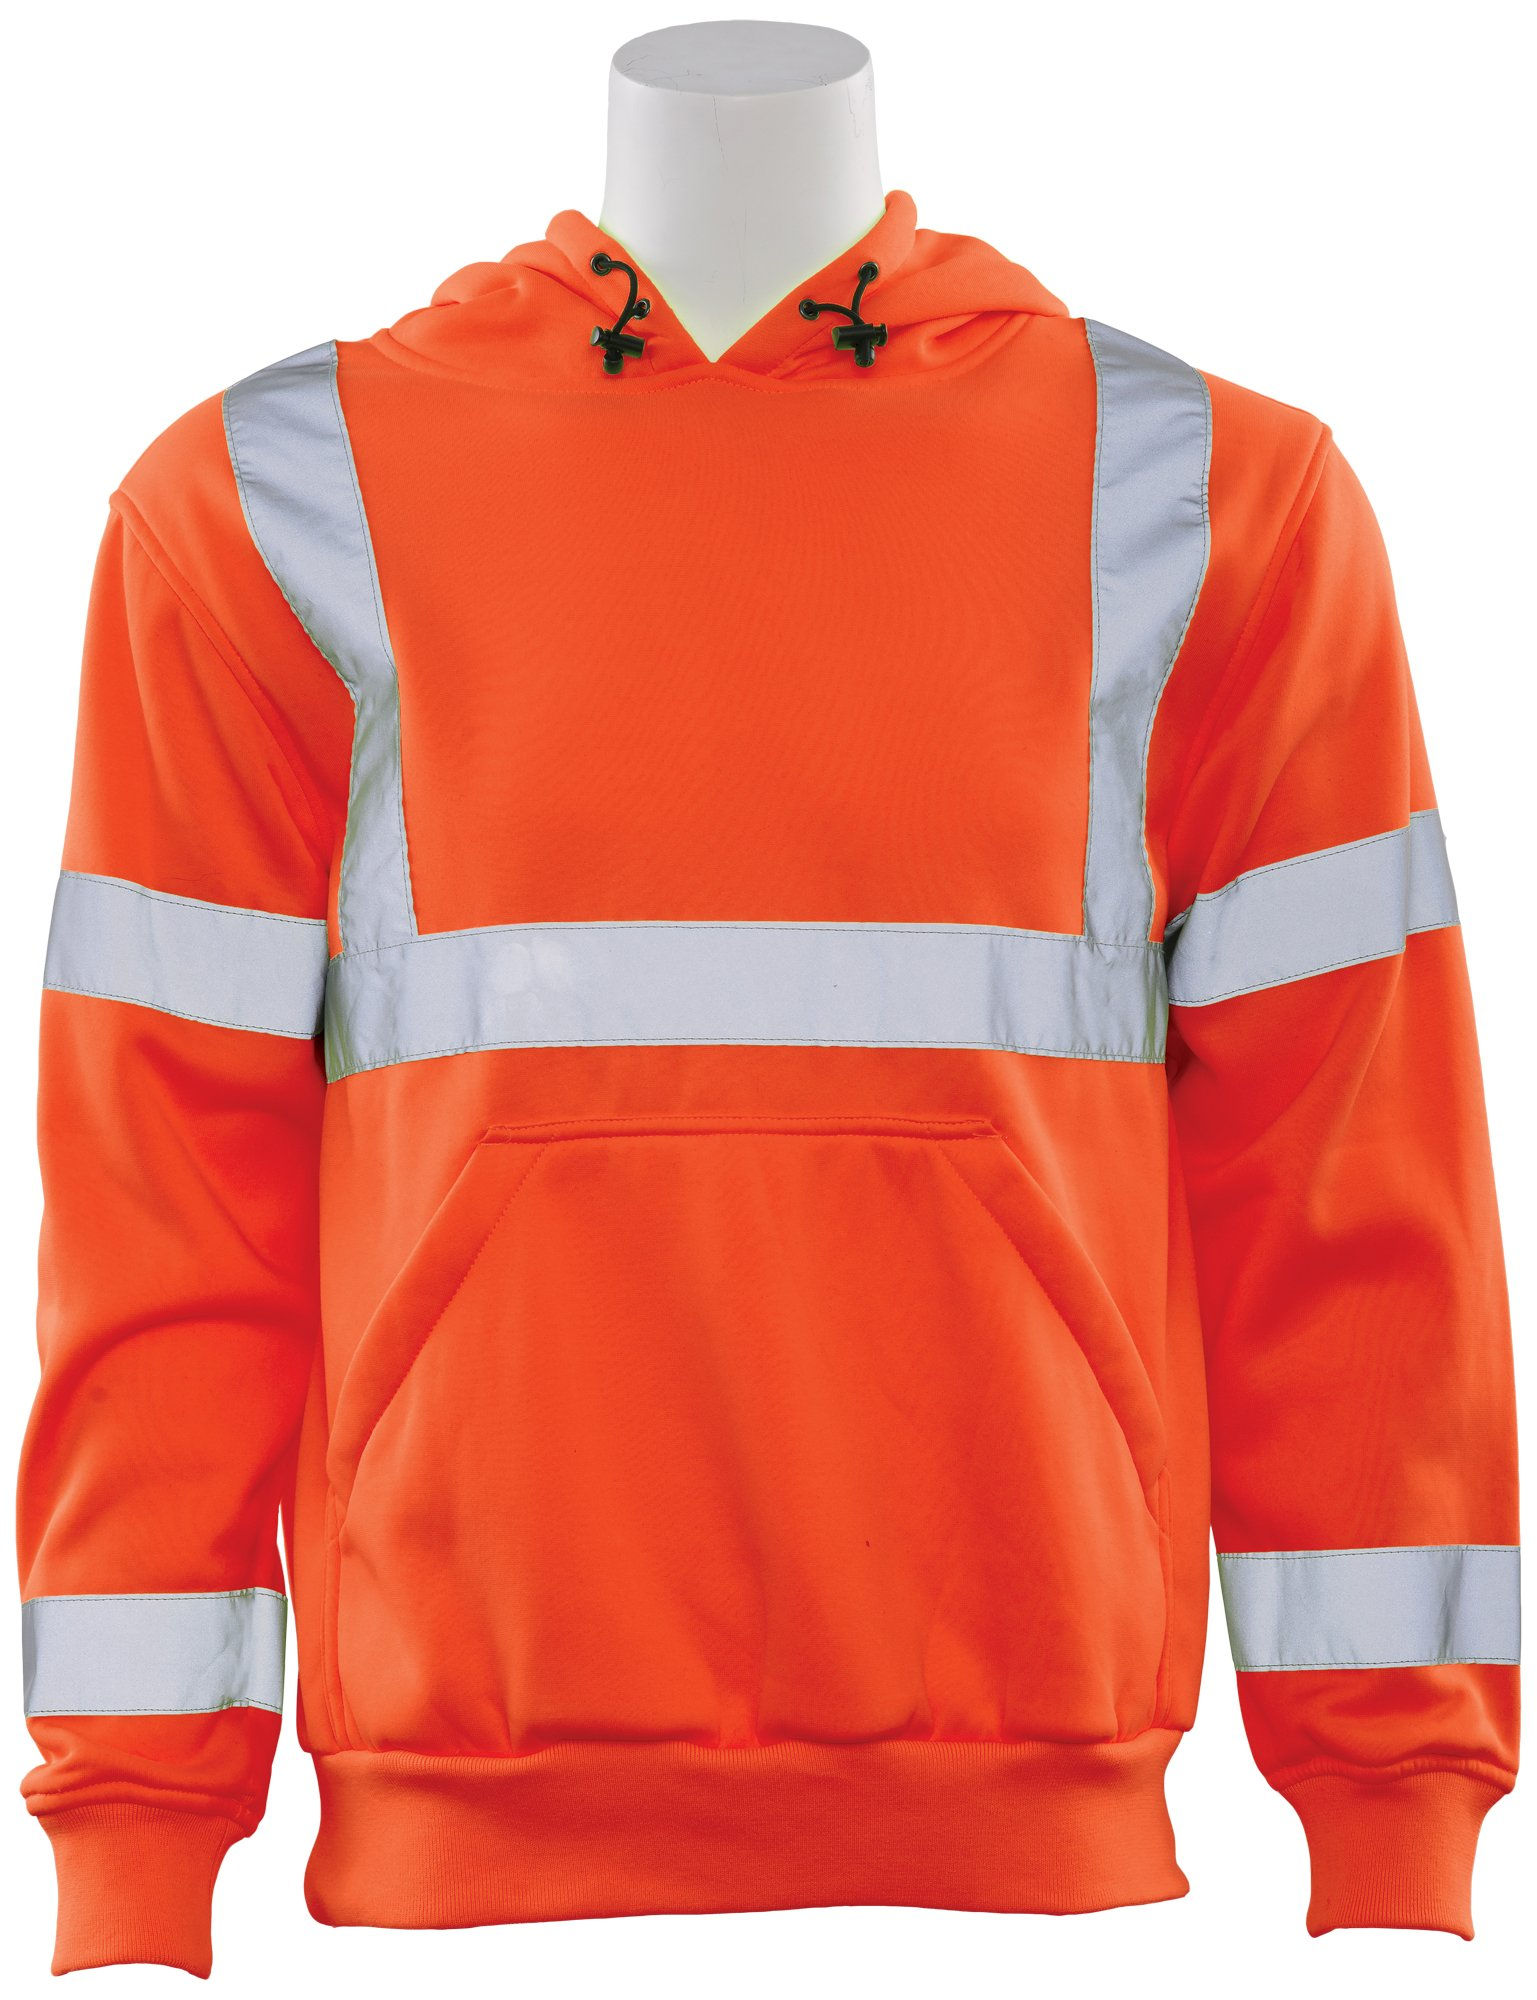 ERB 62236 W376 Aware Wear Class 3 Hooded Pullover Sweatshirt, Orange, Large